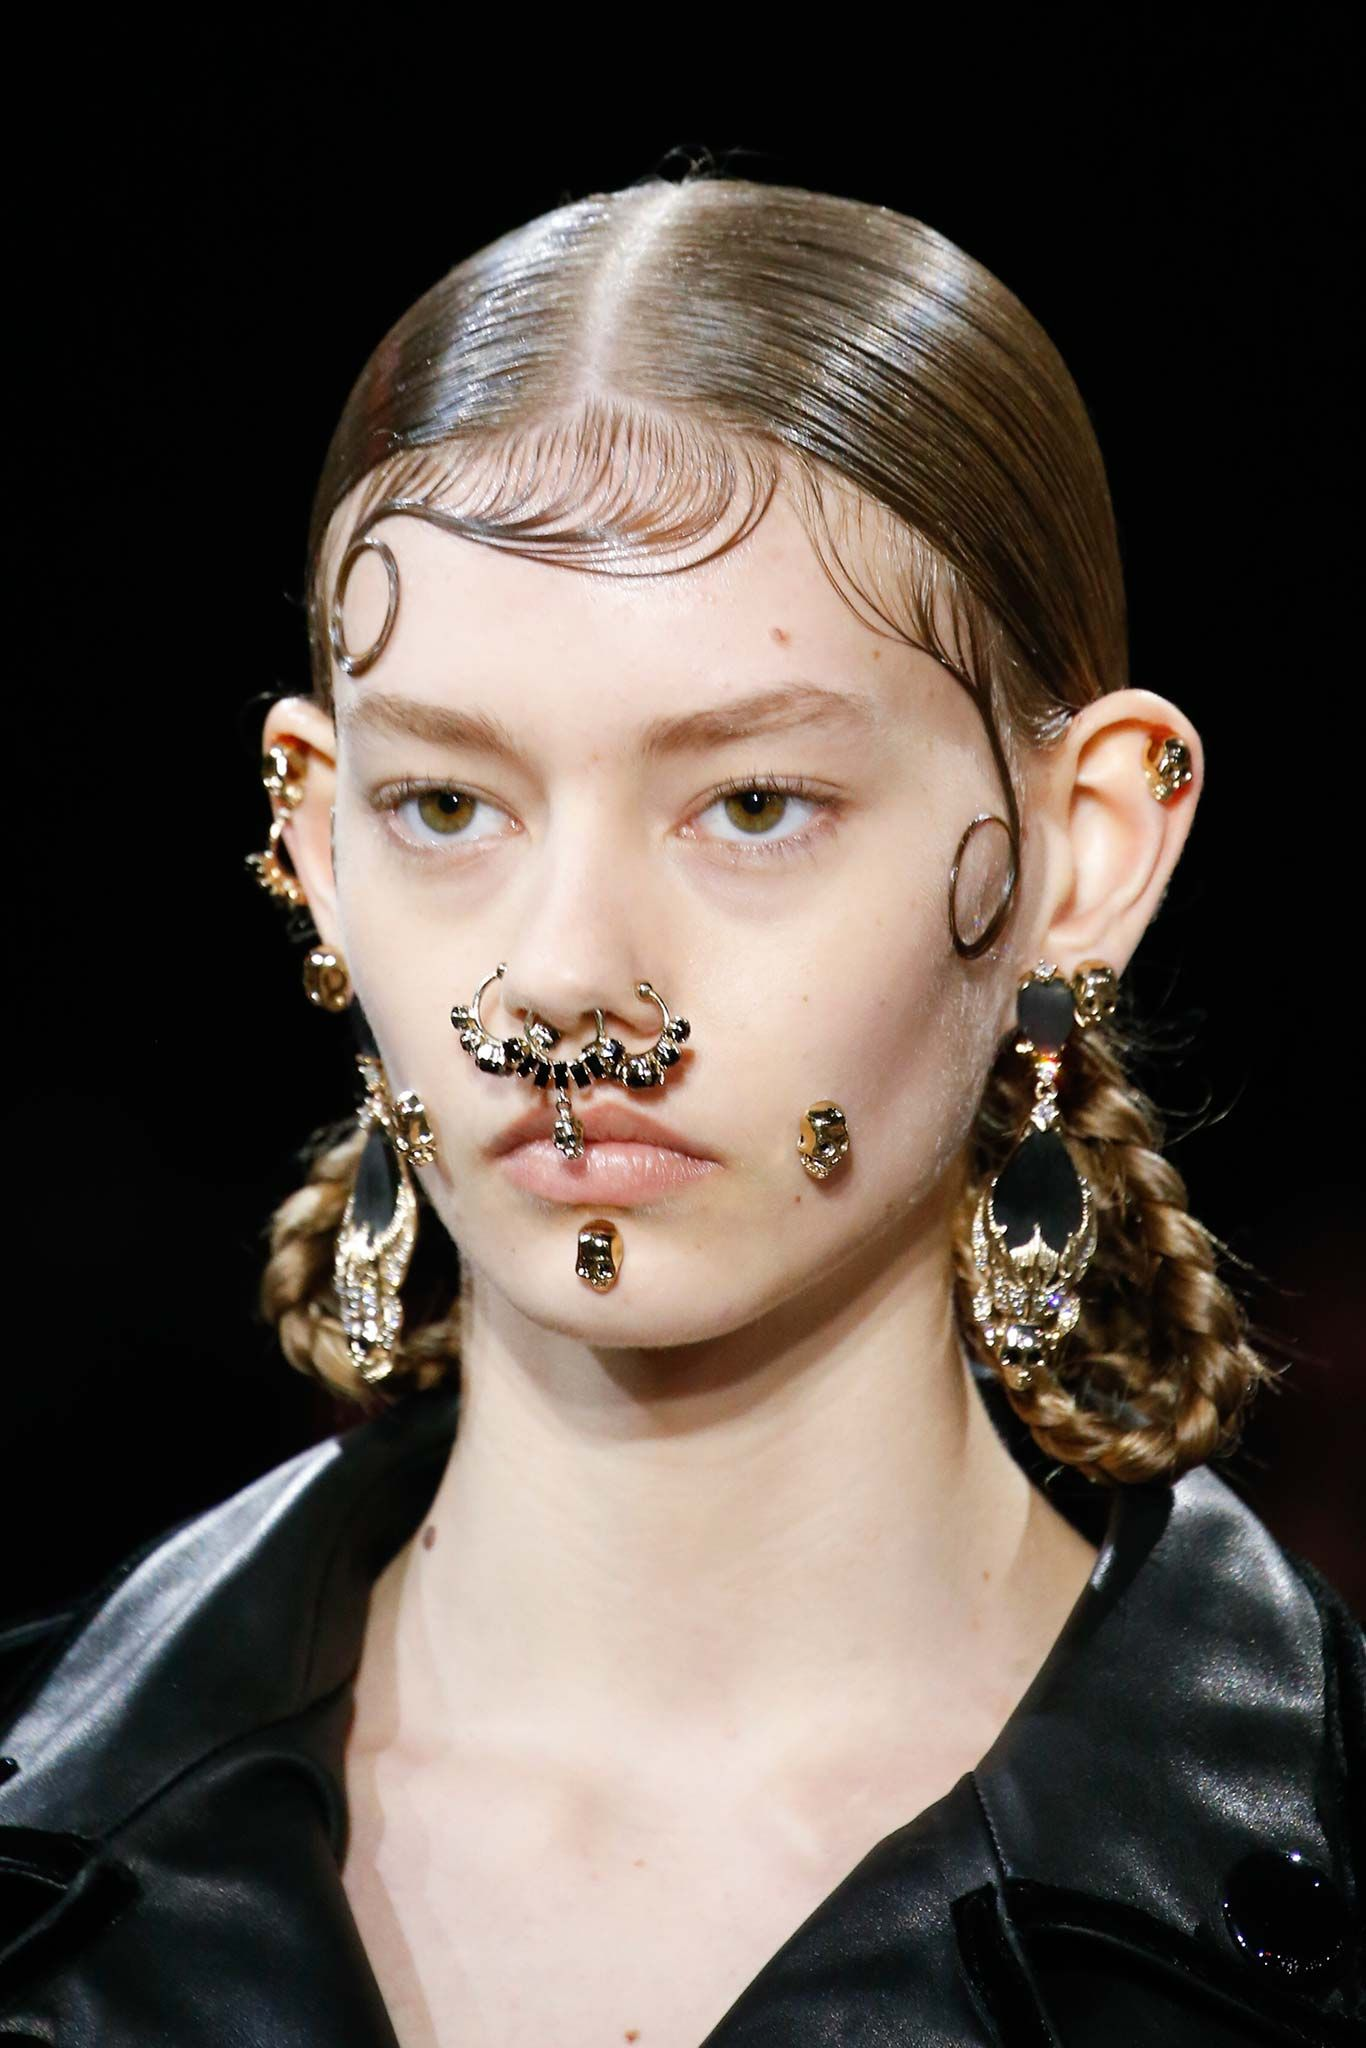 faux piercings givenchy fall 2015 ondriahardin show stopping makeup pinterest haute. Black Bedroom Furniture Sets. Home Design Ideas